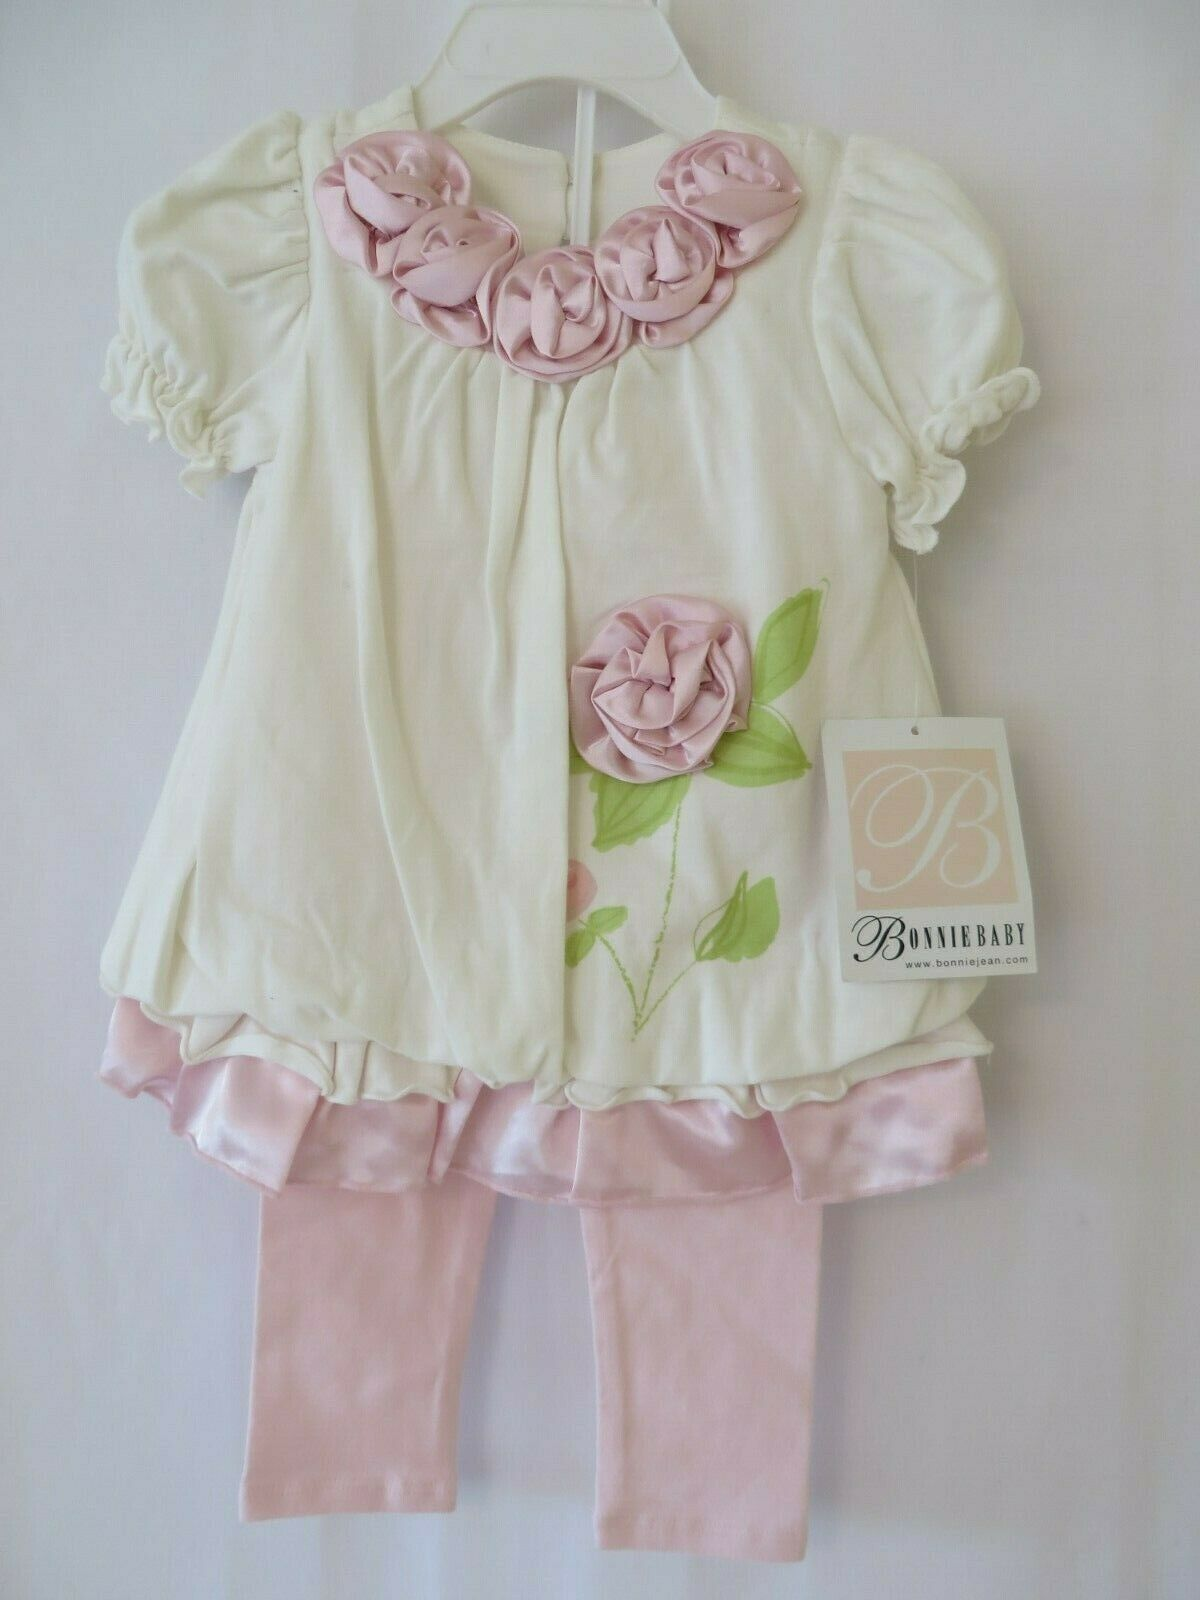 Bonnie Jean Baby Dress W Leggings Fabric Roses Details White Pink 24 Mos U9512 For Sale Online Ebay